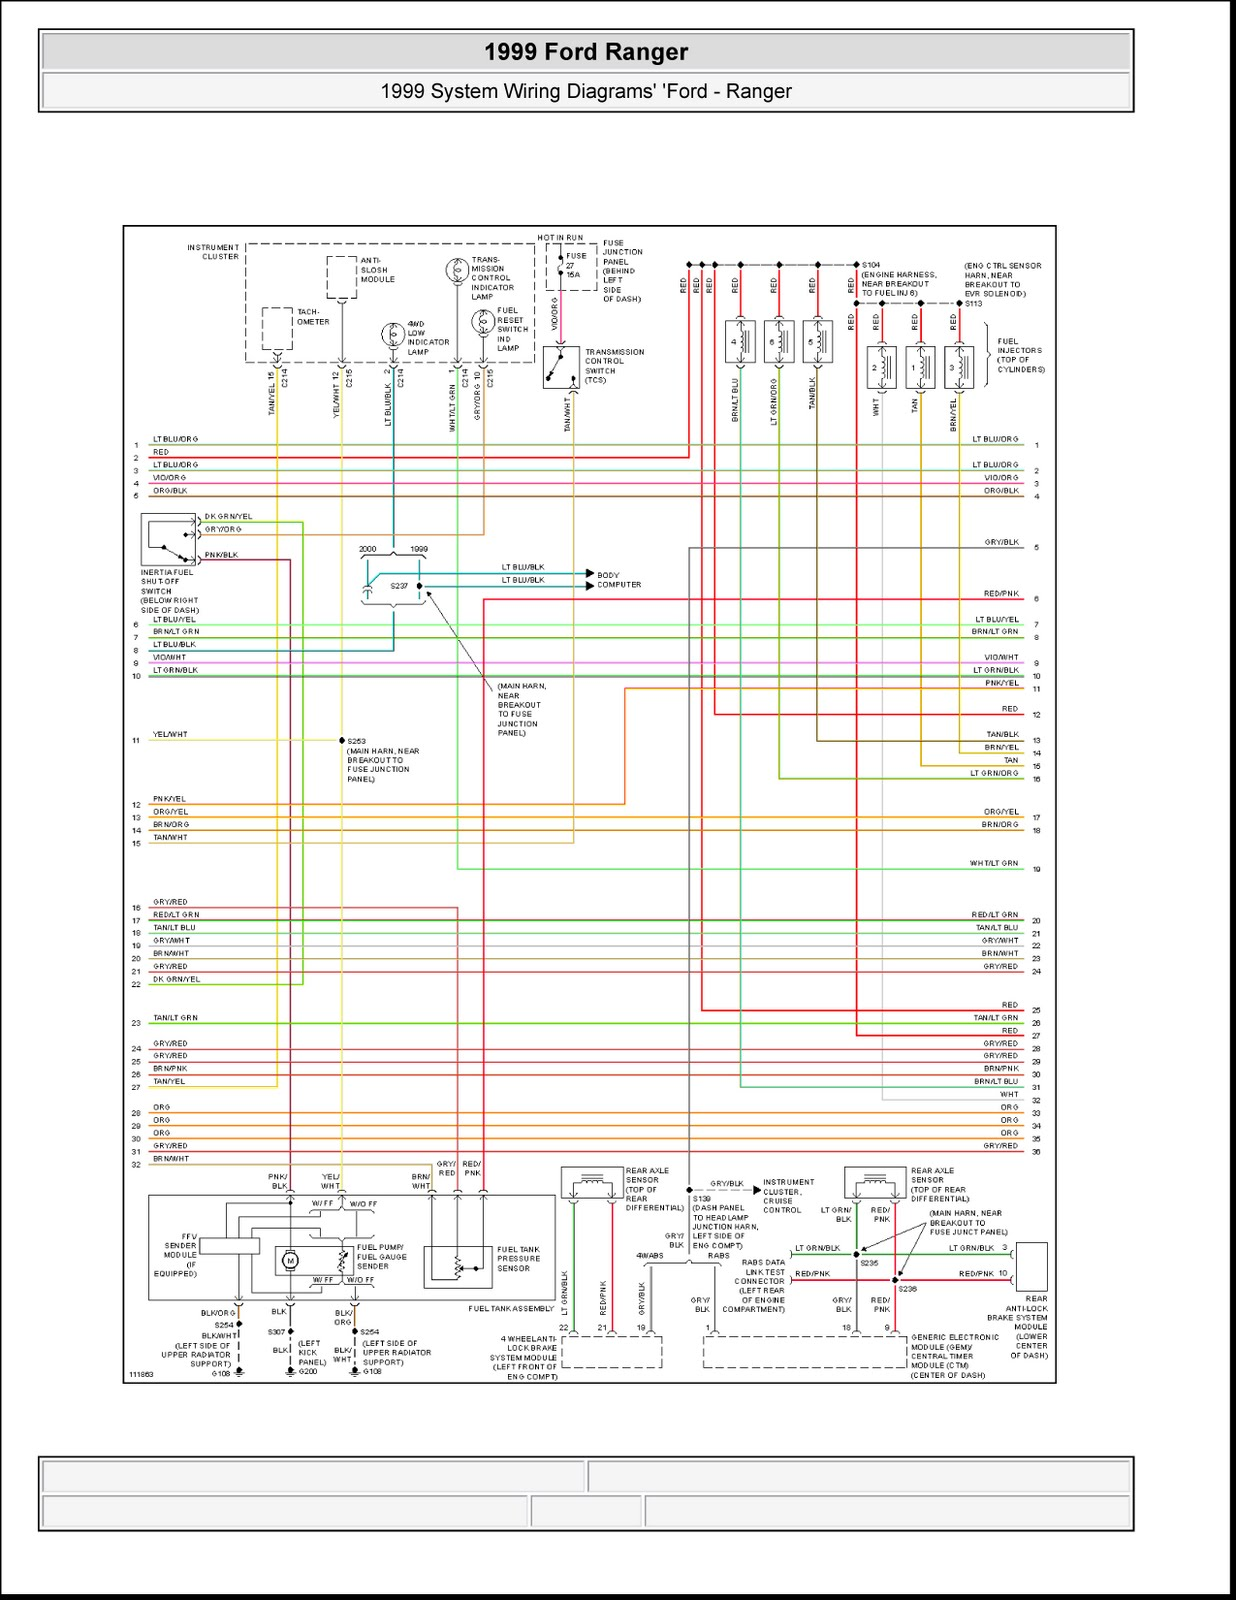 small resolution of 1999 ford ranger system wiring diagrams 4 images ford ranger electrical diagram ford ranger electrical diagram